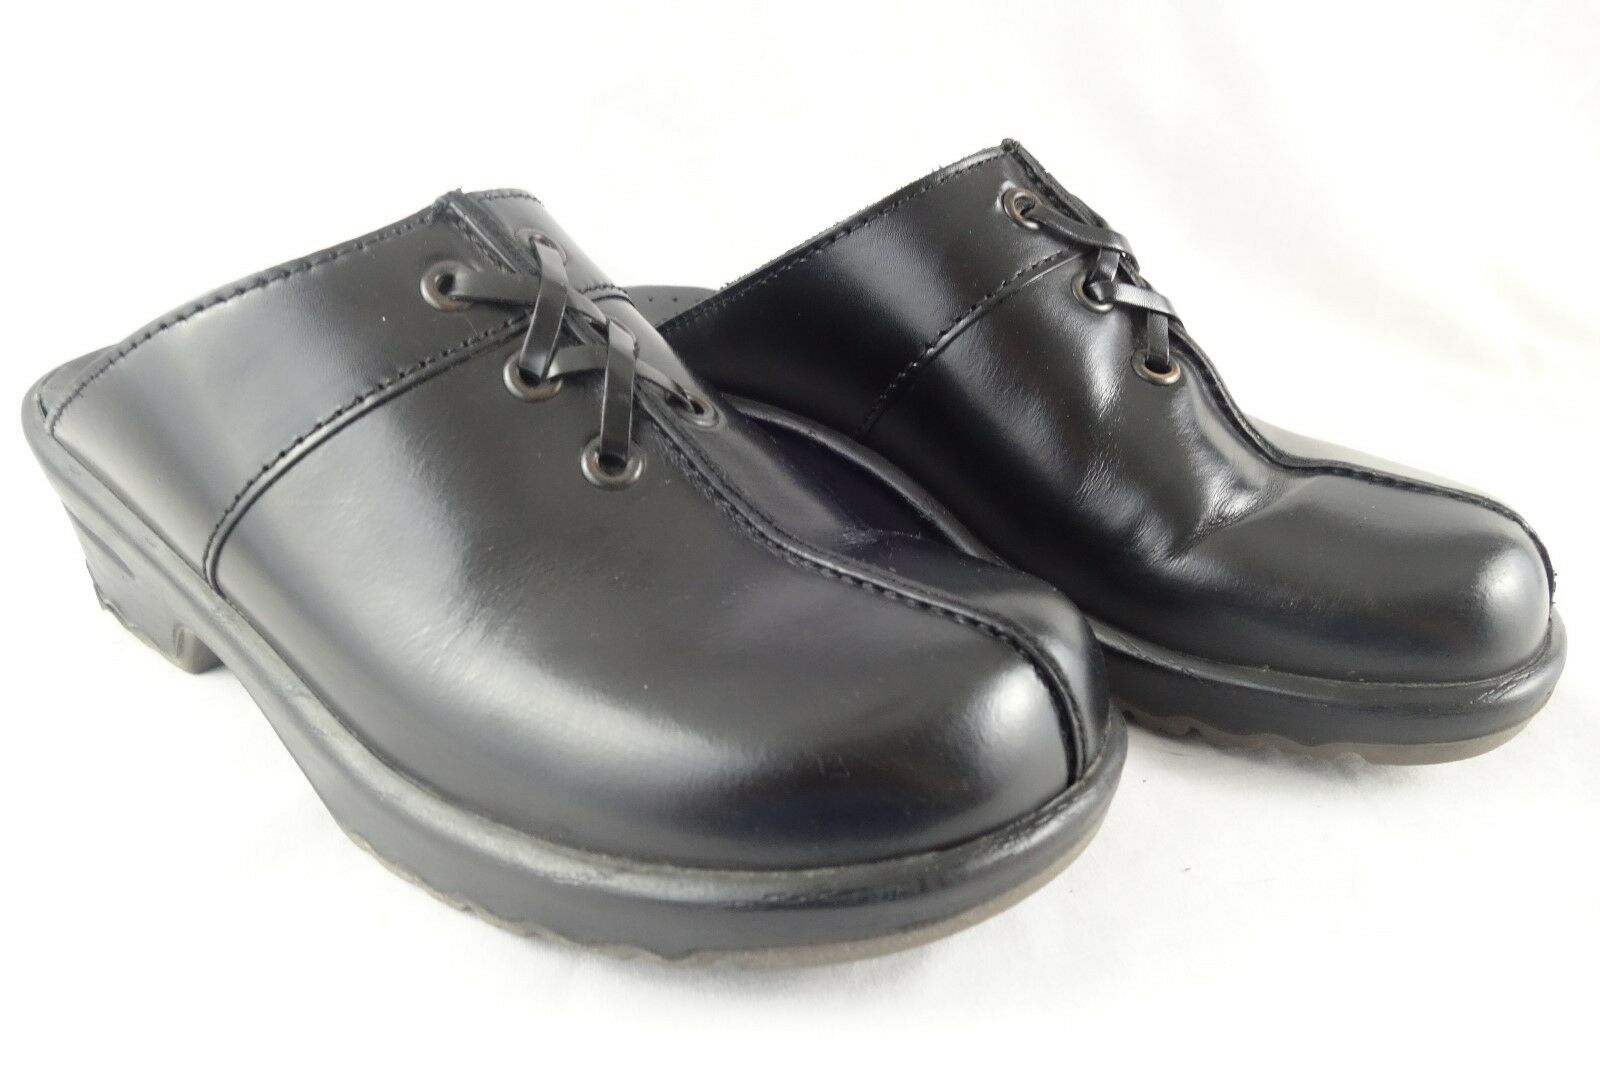 SANITA Black Leather Clogs Mules shoes Loafers Women's 36 5.5